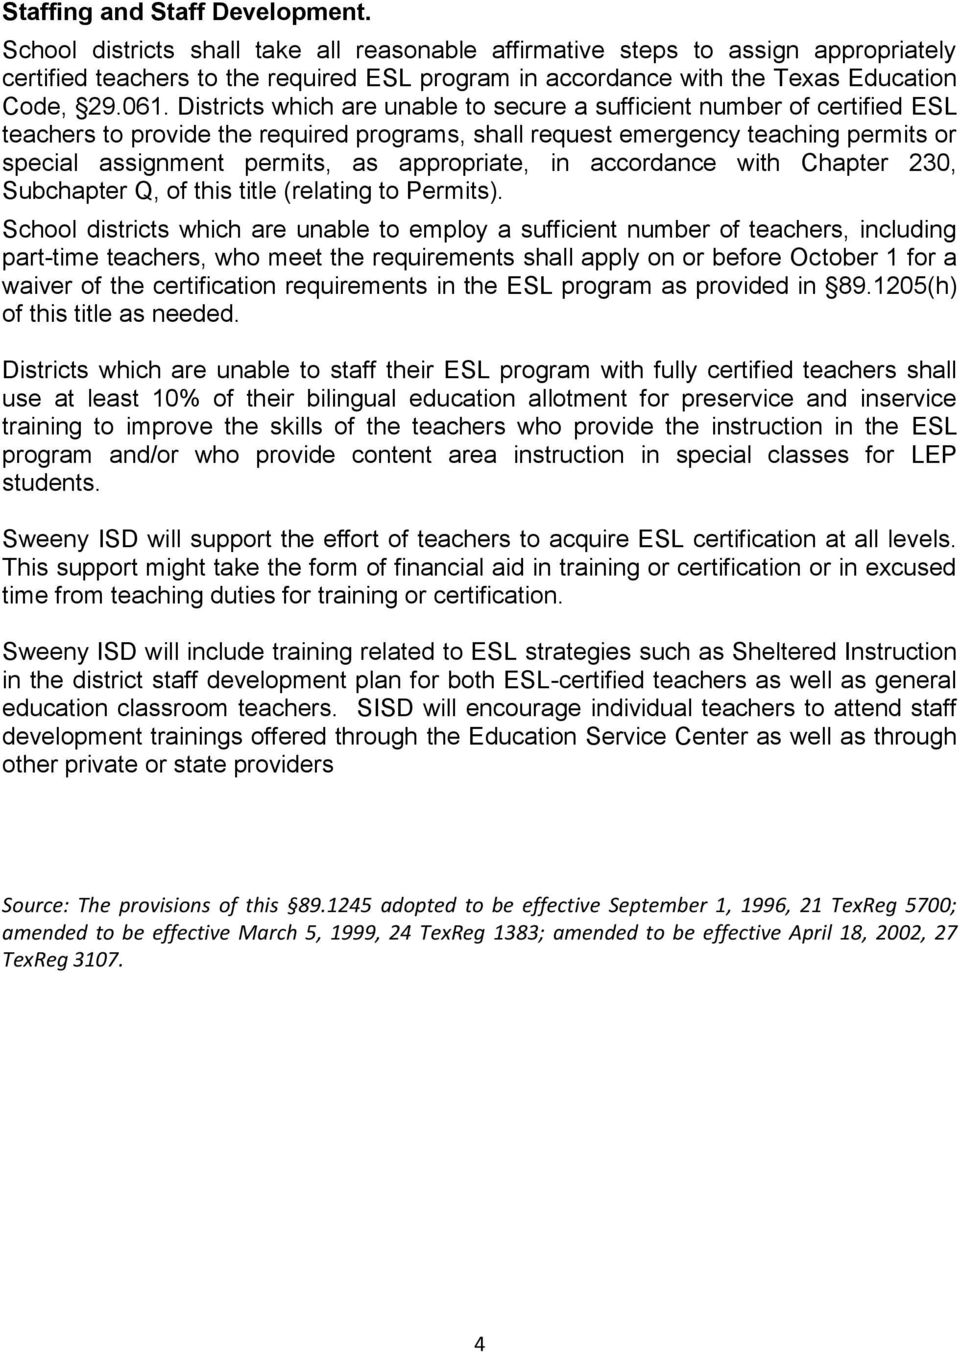 Districts which are unable to secure a sufficient number of certified ESL teachers to provide the required programs, shall request emergency teaching permits or special assignment permits, as